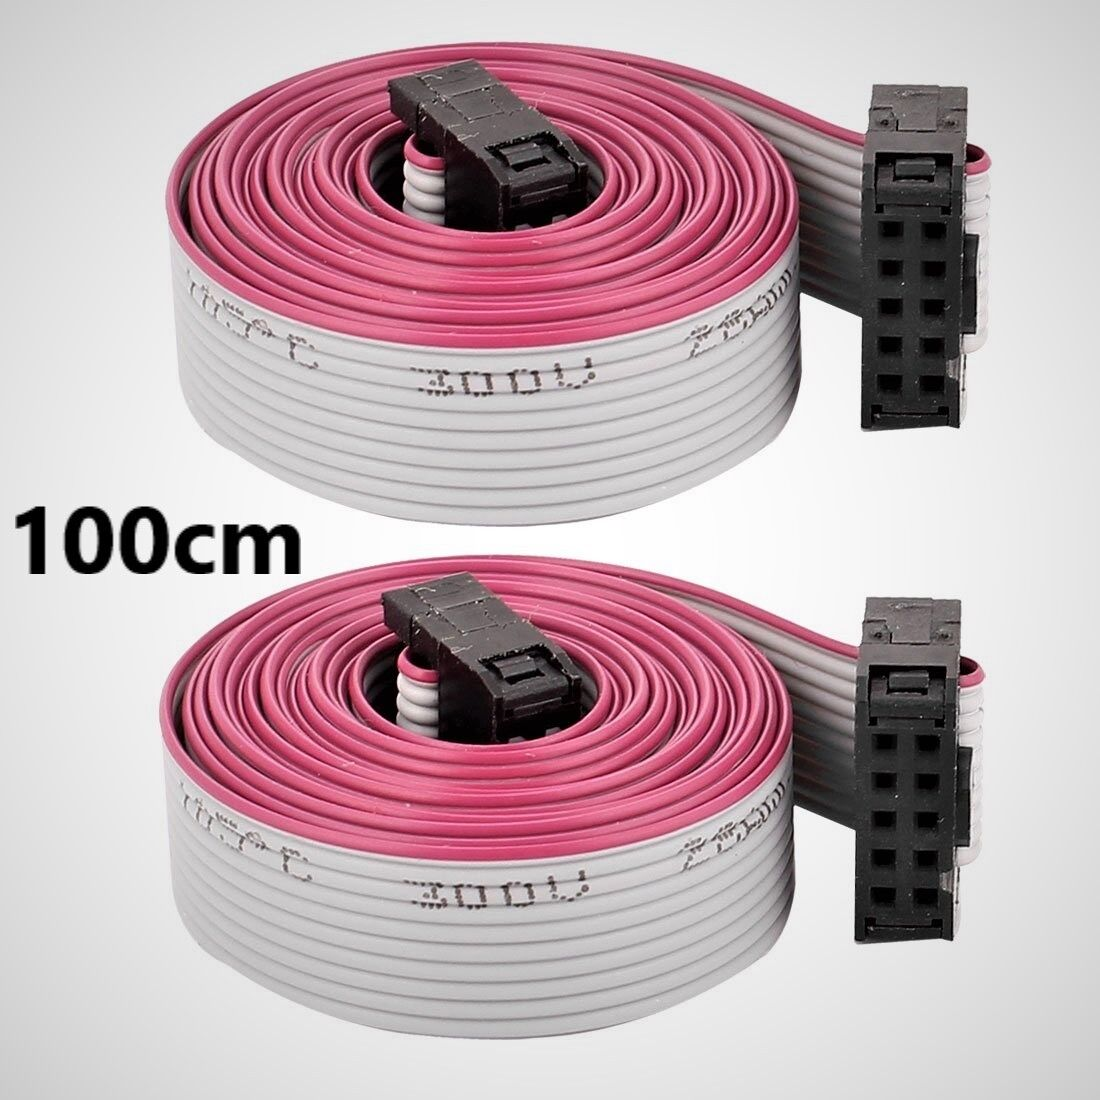 100cm 2004 12864 LCD Extension Cable 3D Printer Prusa Folger Anet Creality Ramps